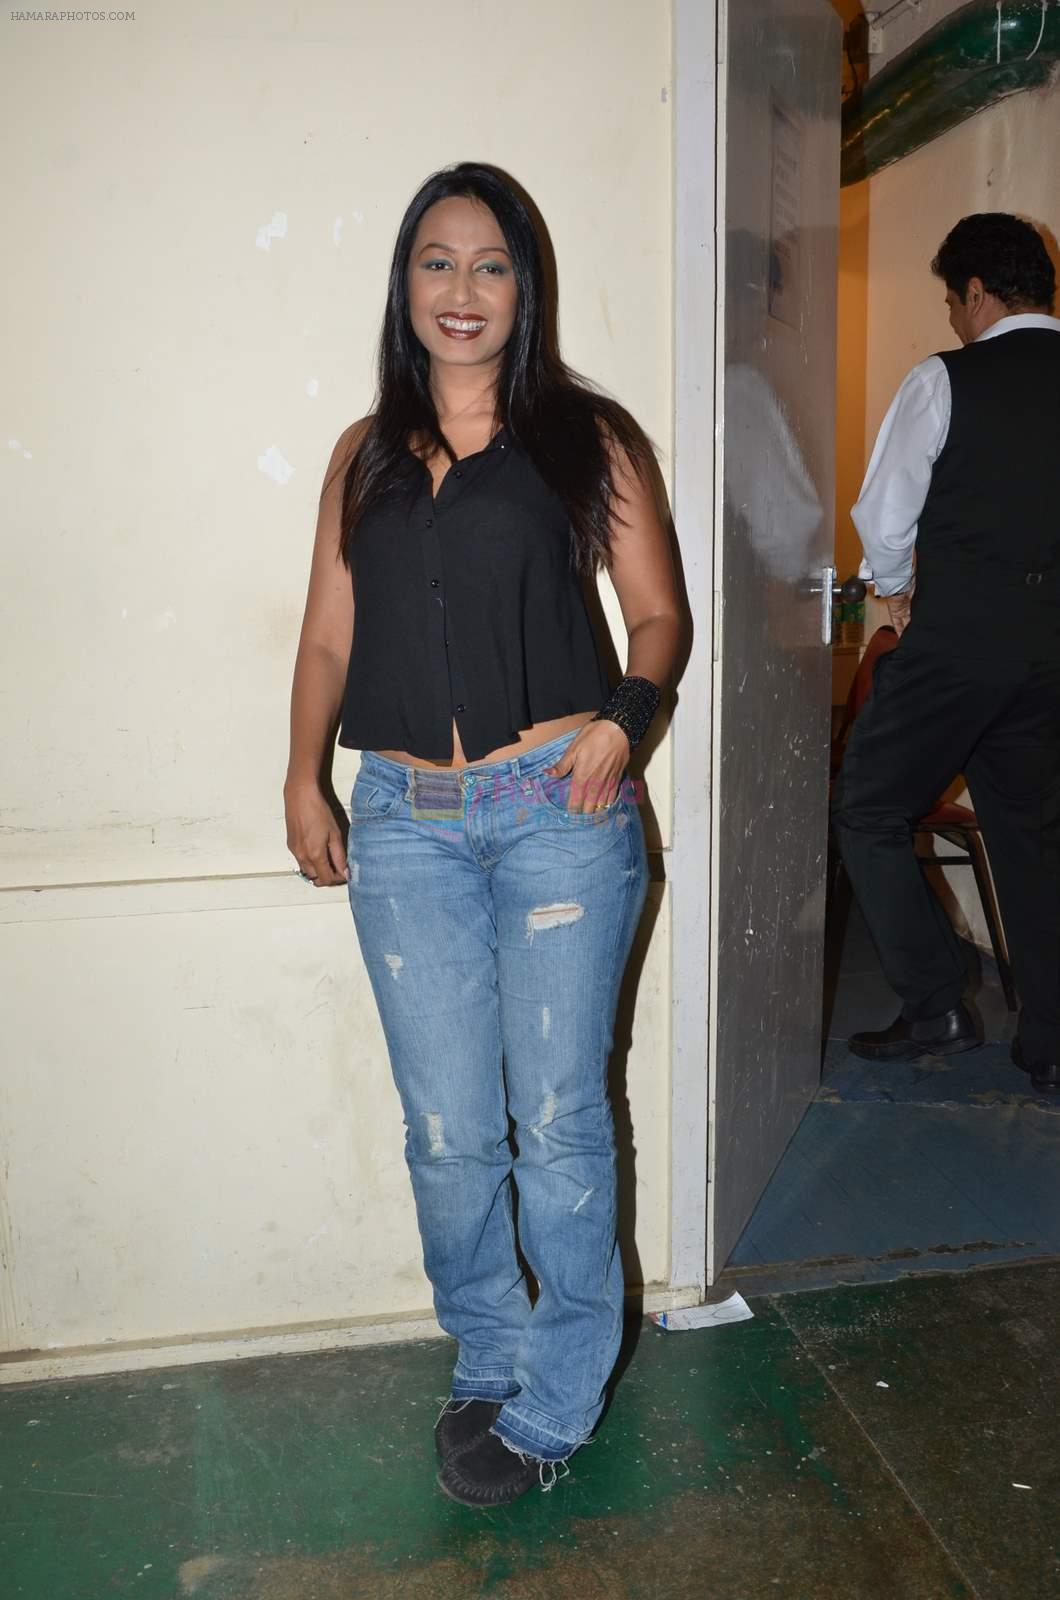 Discussion on this topic: Pauleen Luna (b. 1988), kashmira-shah/